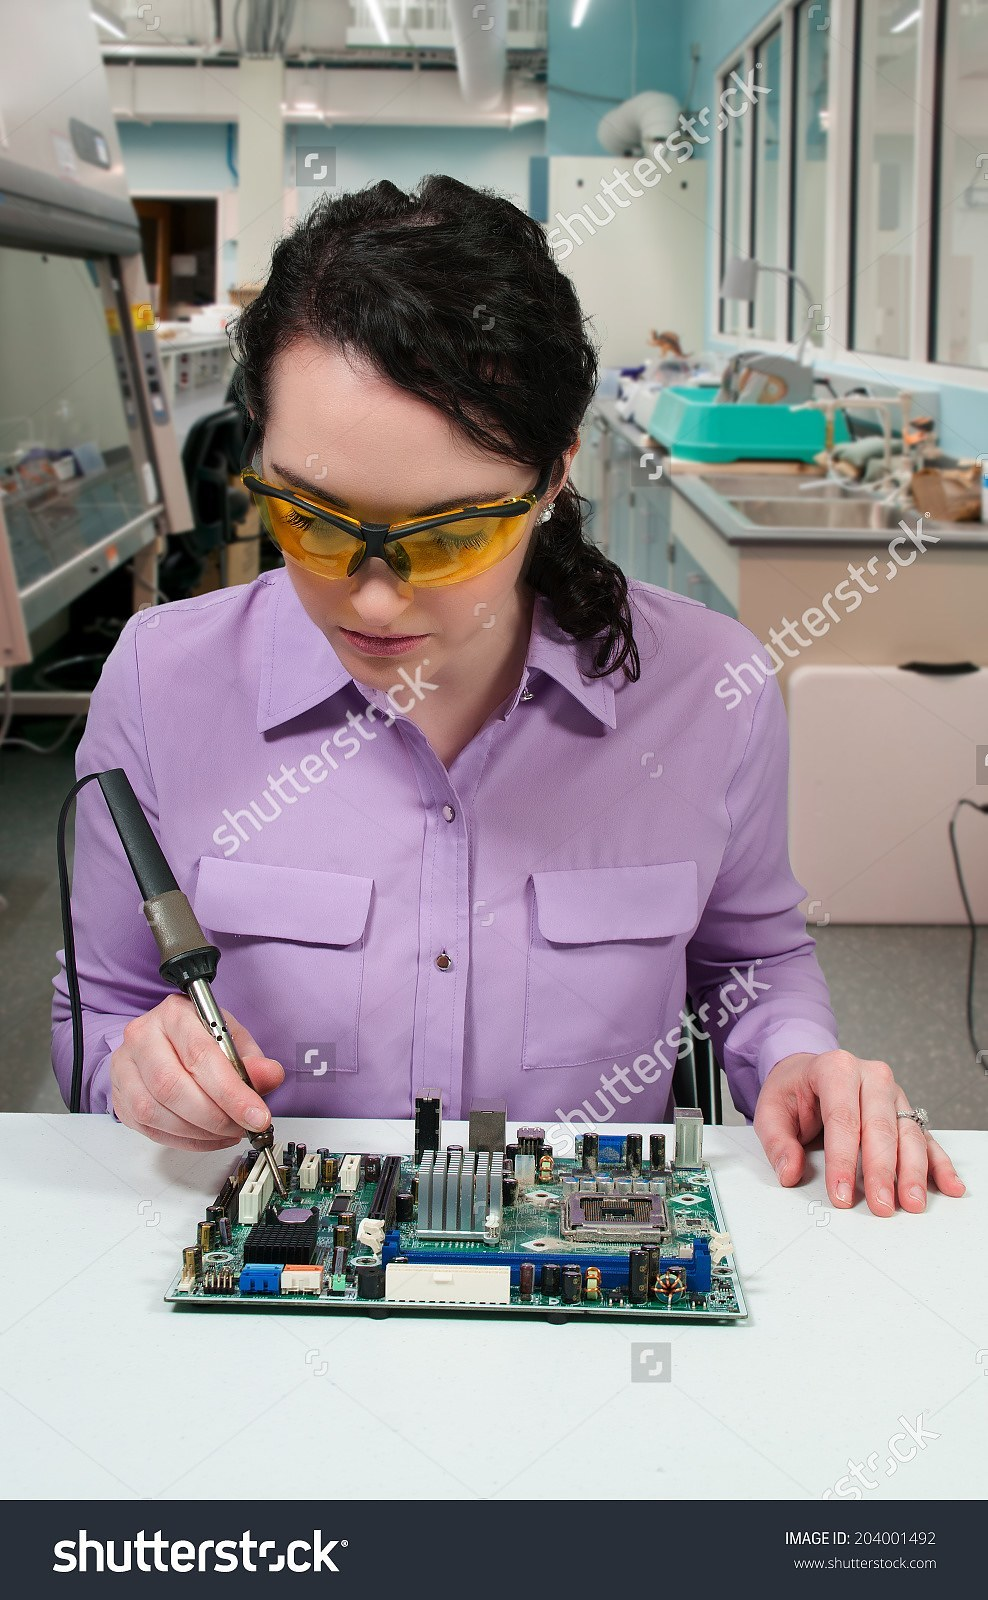 What The Flux How Does Solder Work Anyway Hackaday Here At Printed Circuits Electronic Repairs We Pride Ourselves In Wheres Safety Glasses